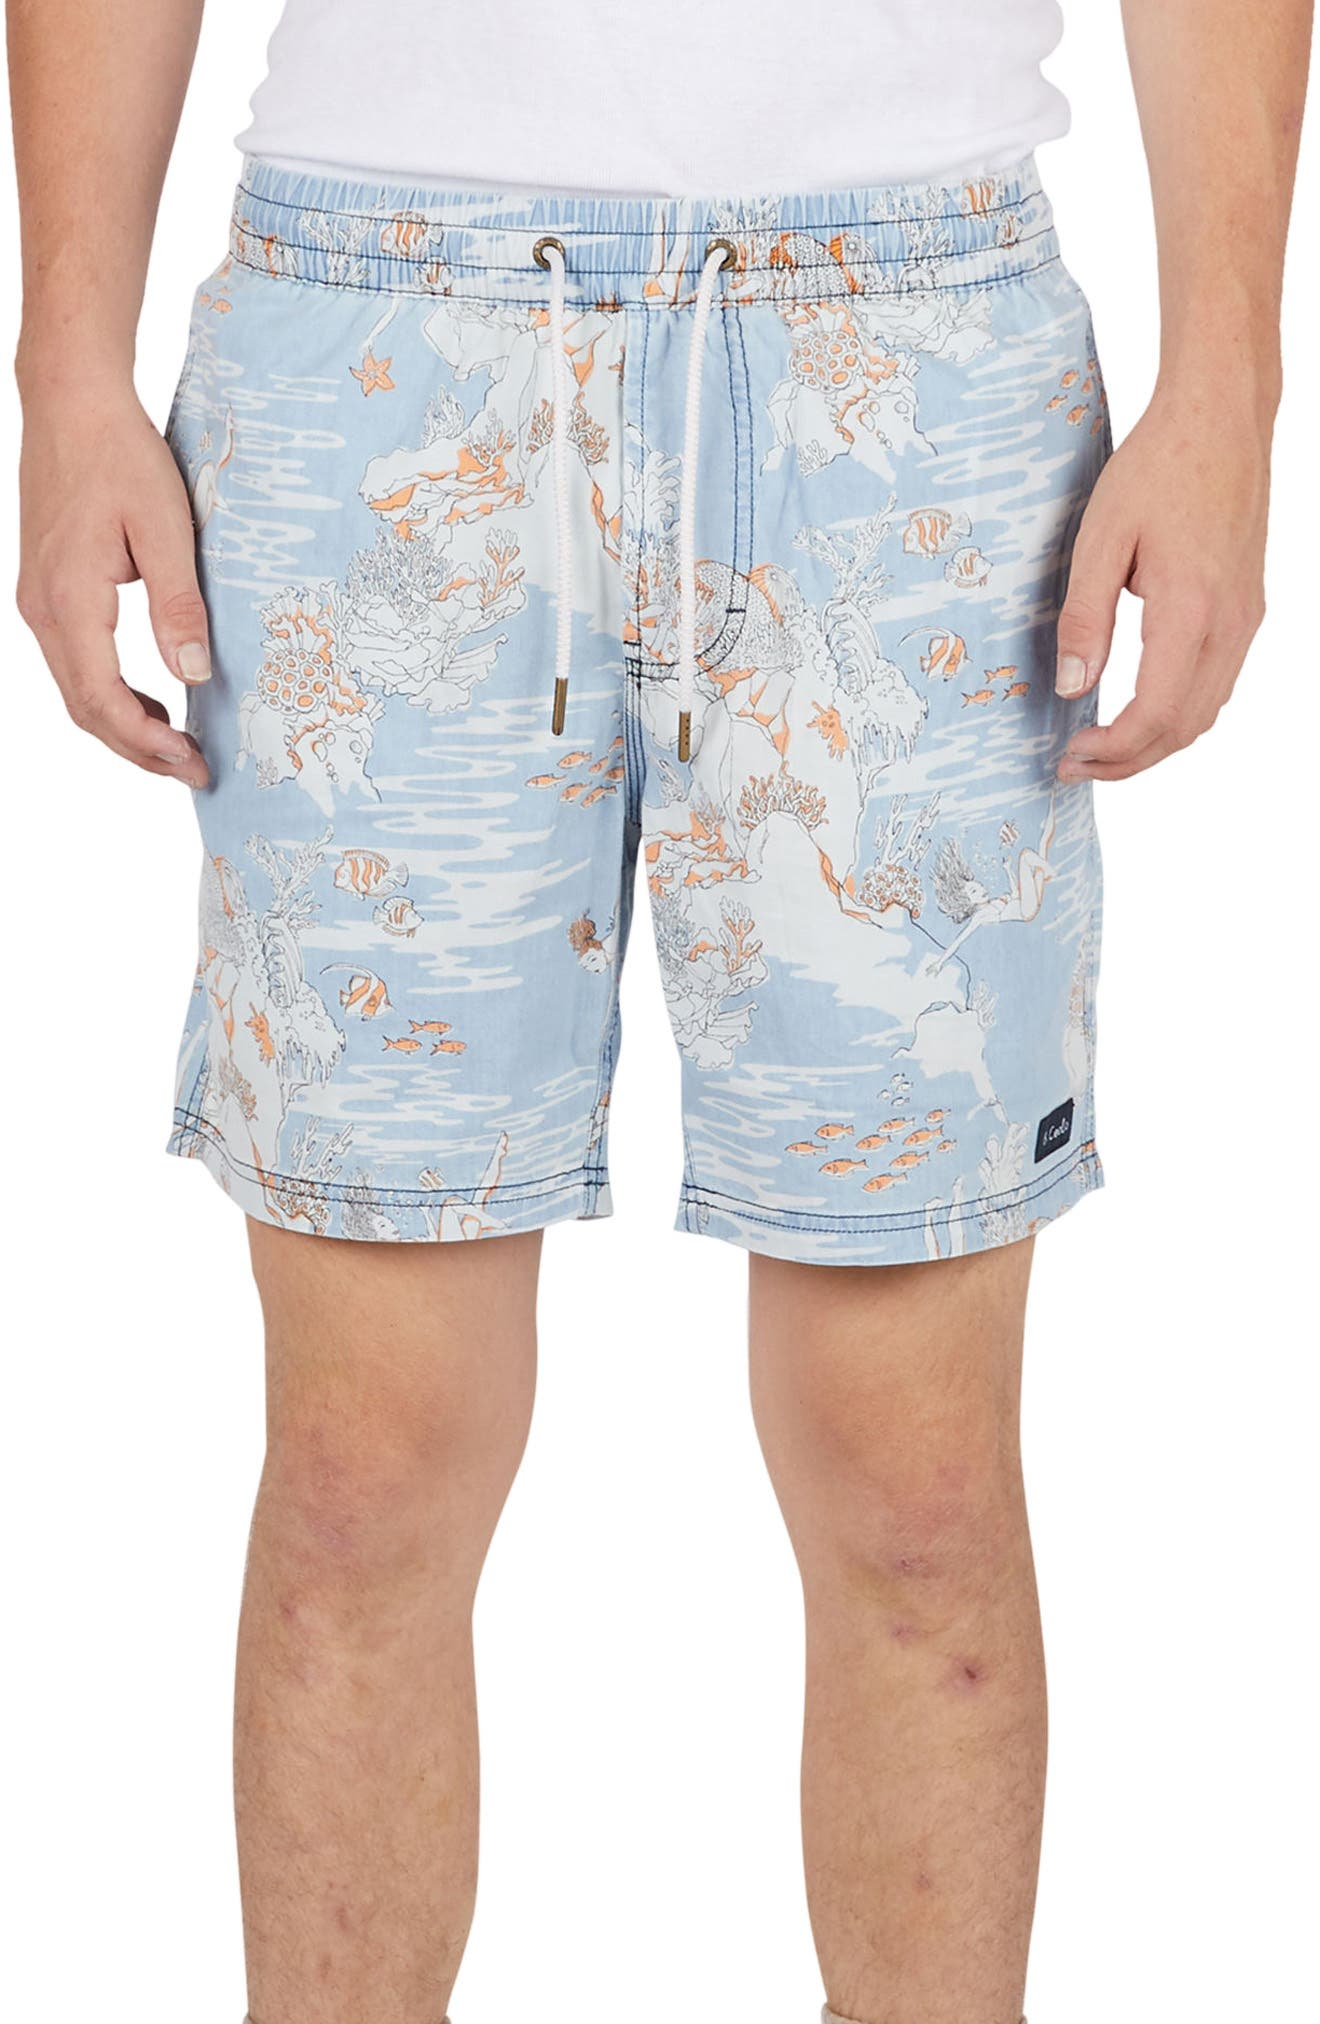 Barney Cools Poolside Shorts